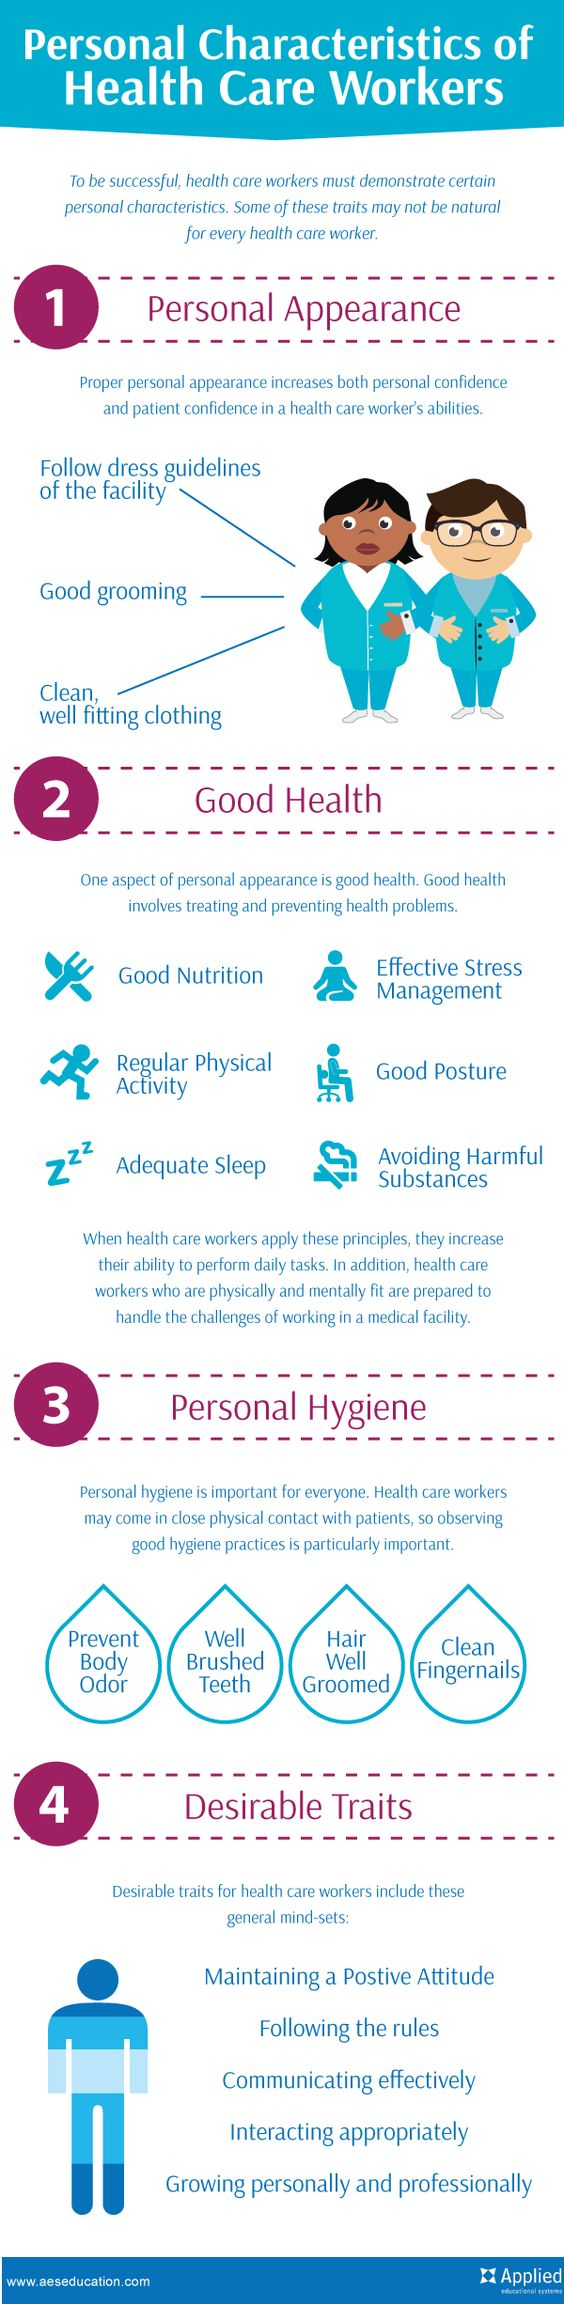 personal qualities of a health care worker part i we health personal characteristics of a health care worker infographic blog aeseducation